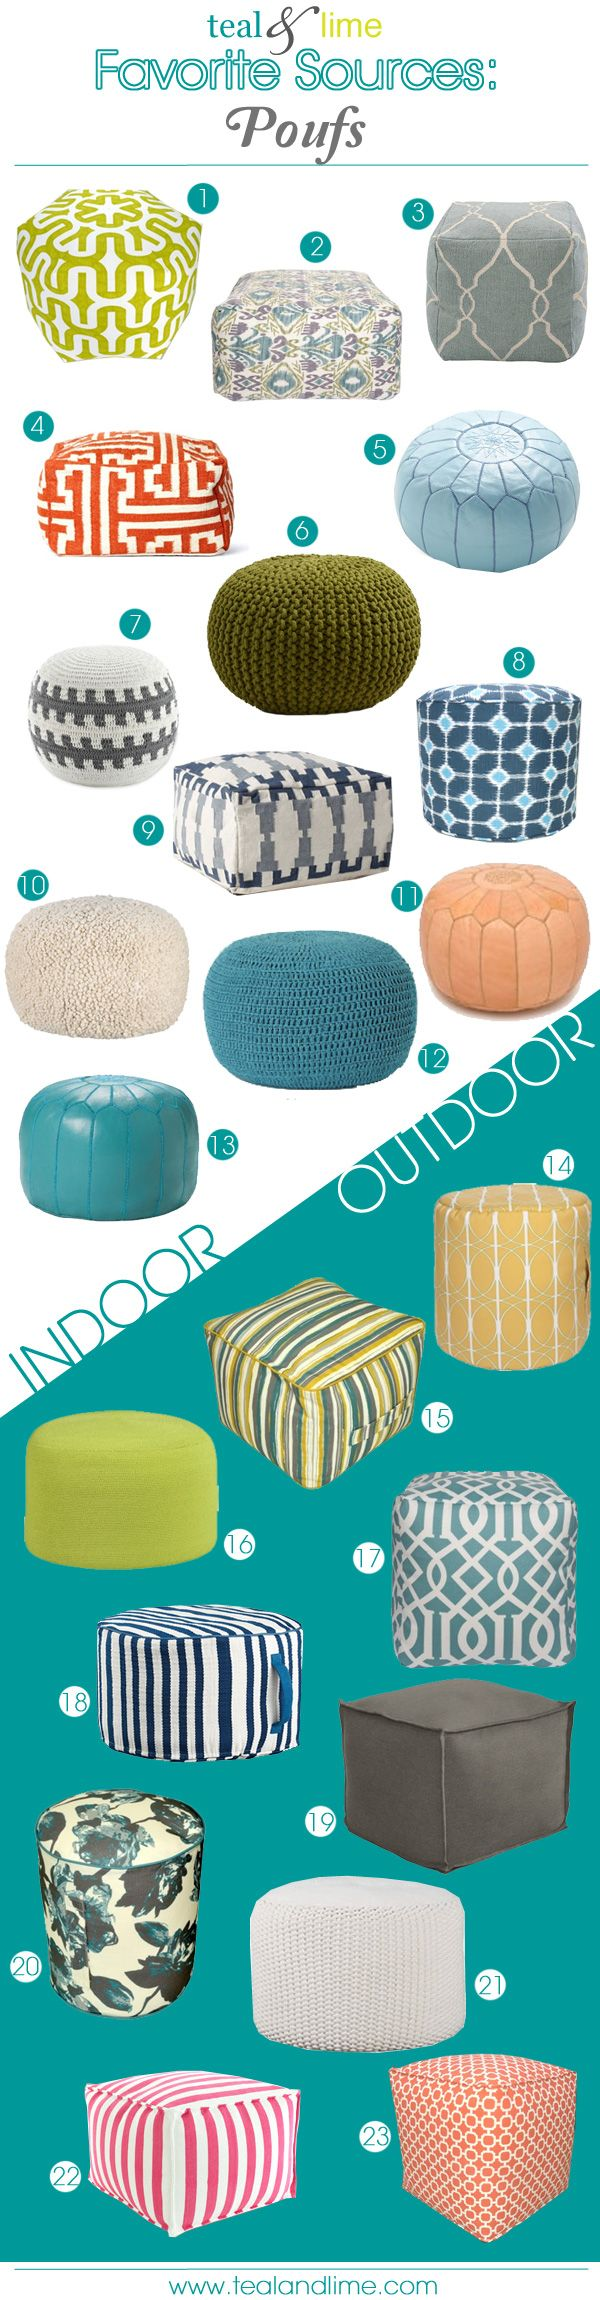 favorite sources for poufs